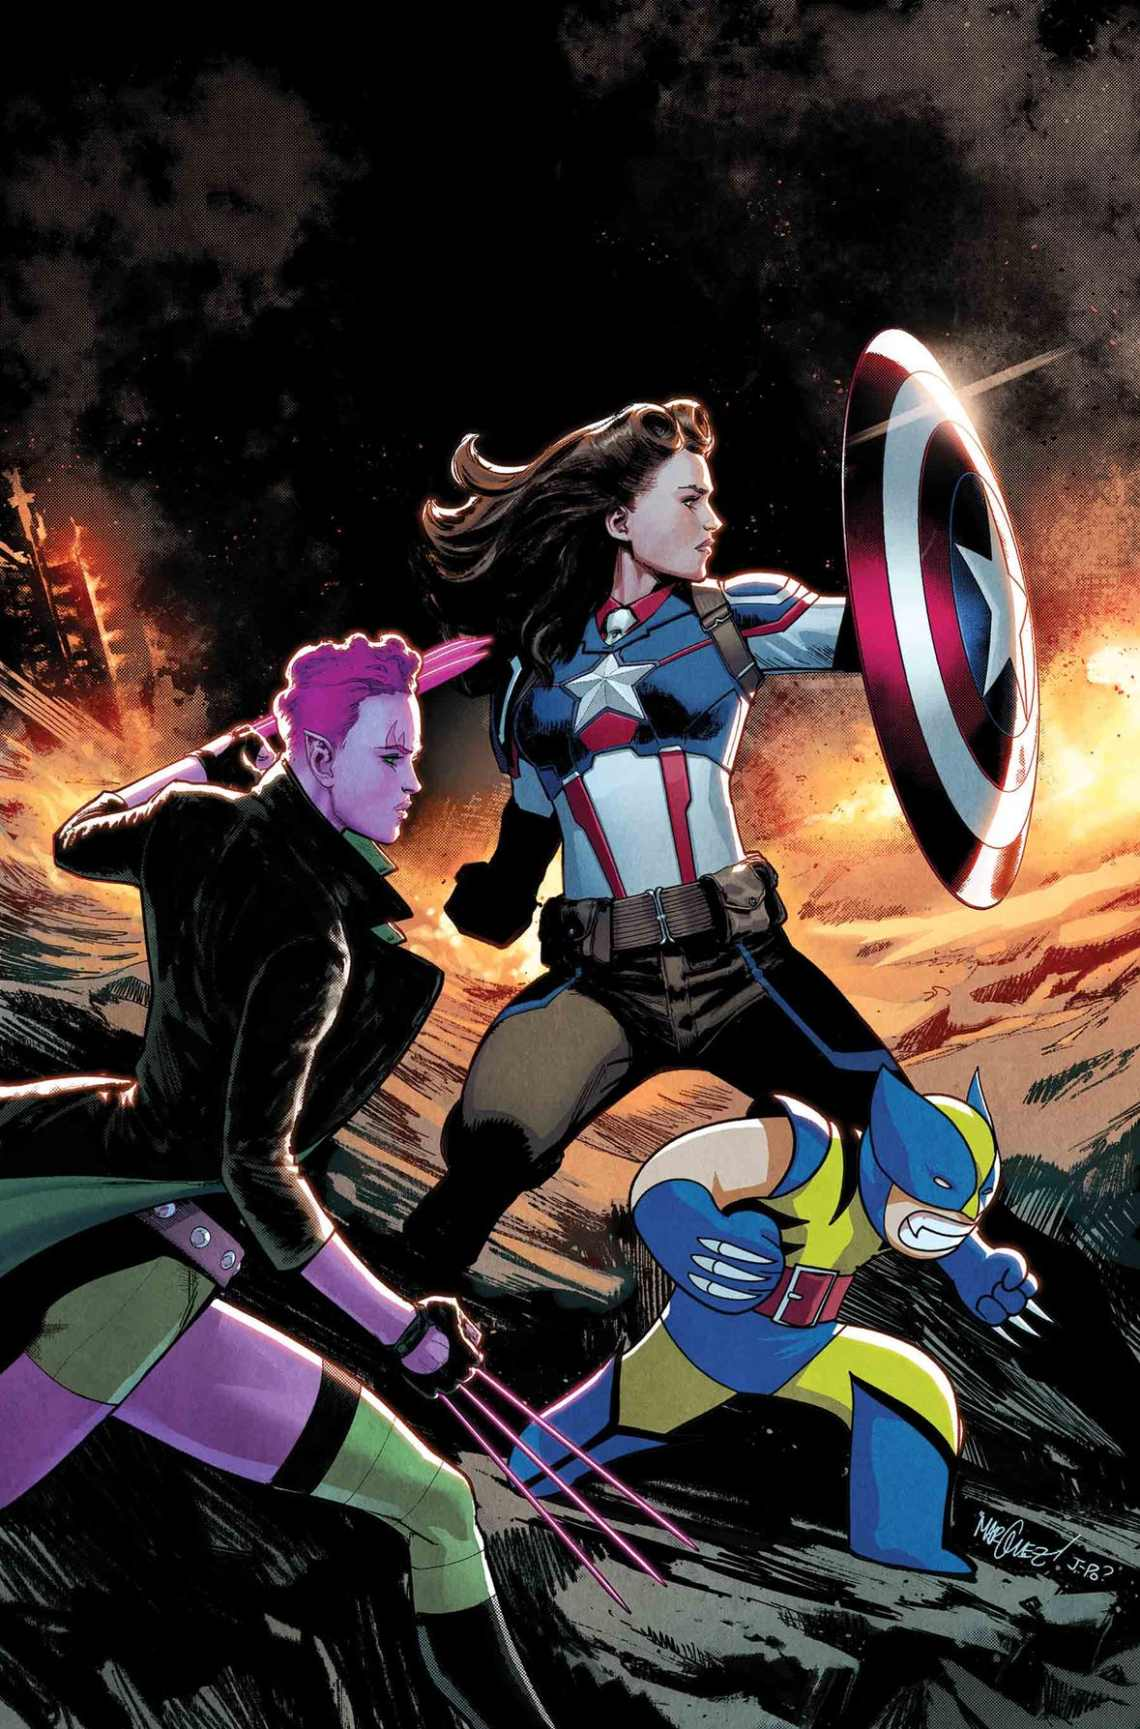 Peggy-Carter-as-Captain-America-on-Exiles-Cover.jpg